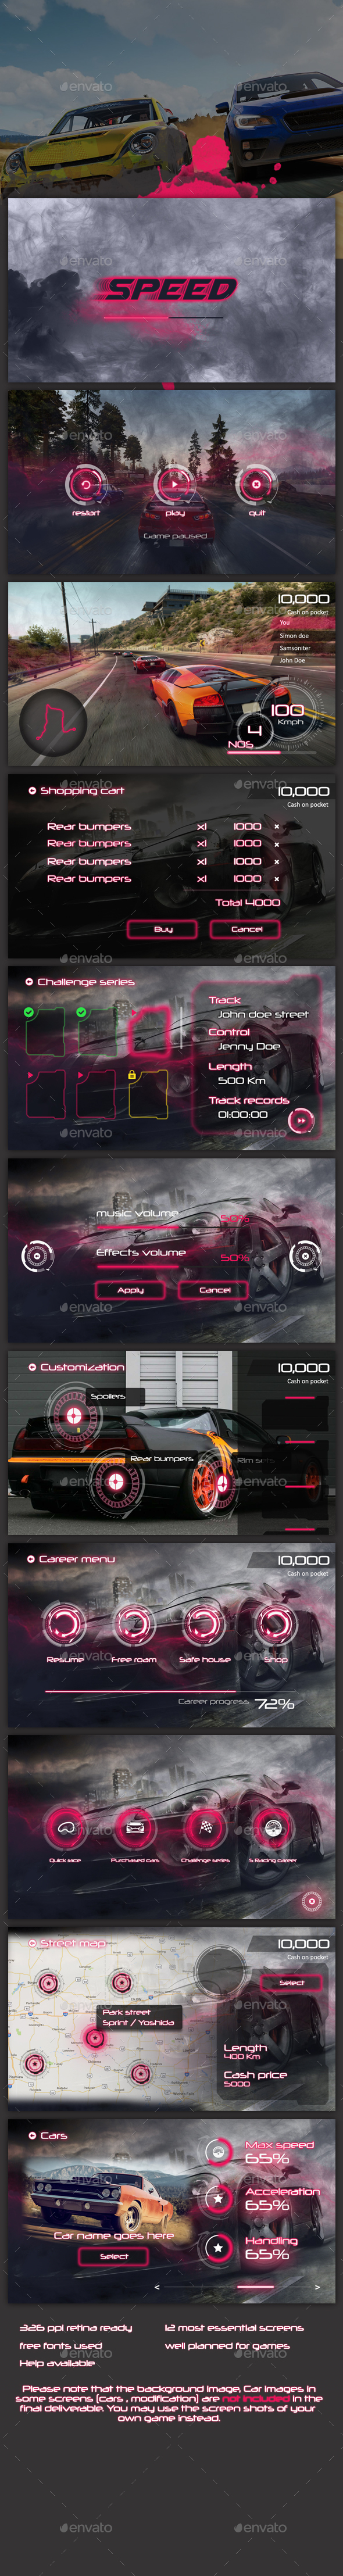 Car Game Graphics, Designs & Templates from GraphicRiver